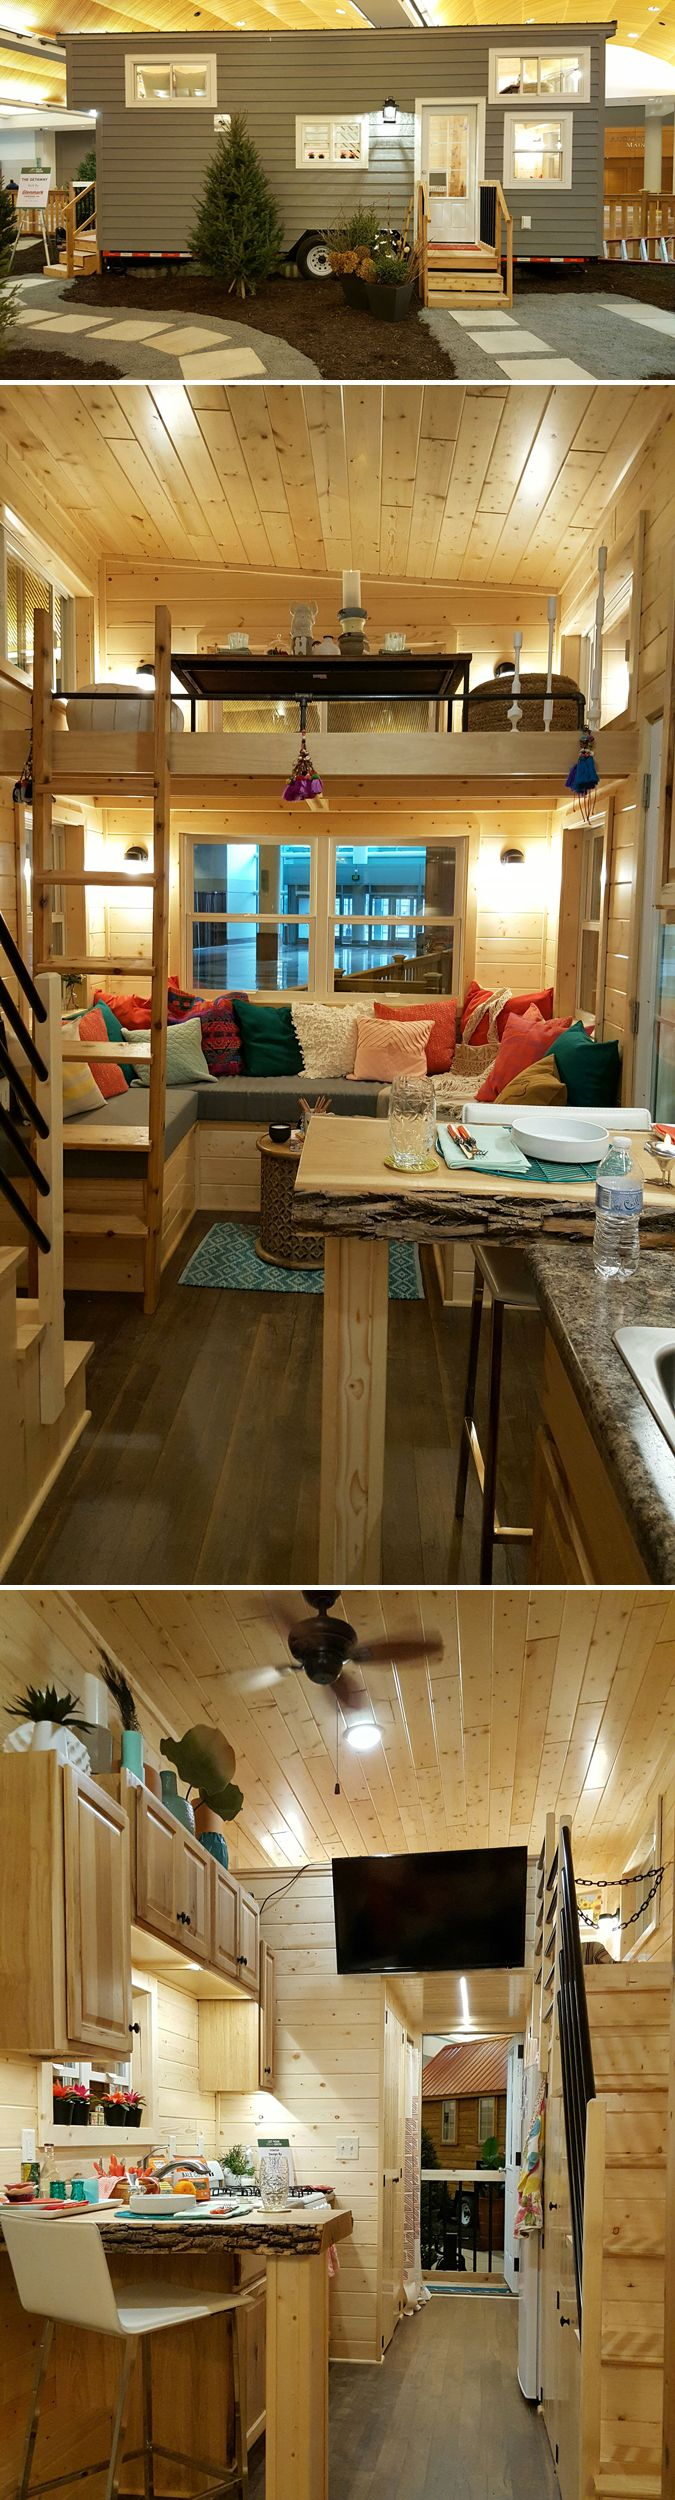 25 best tiny houses ideas on pinterest tiny homes mini homes and tiny house design for Minneapolis home and design show